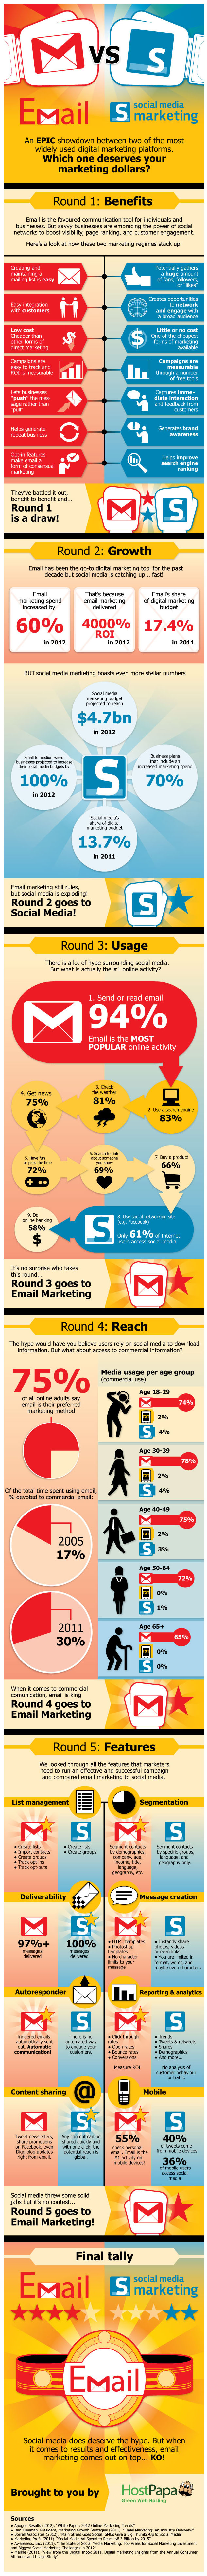 Email marketing versus social media marketing